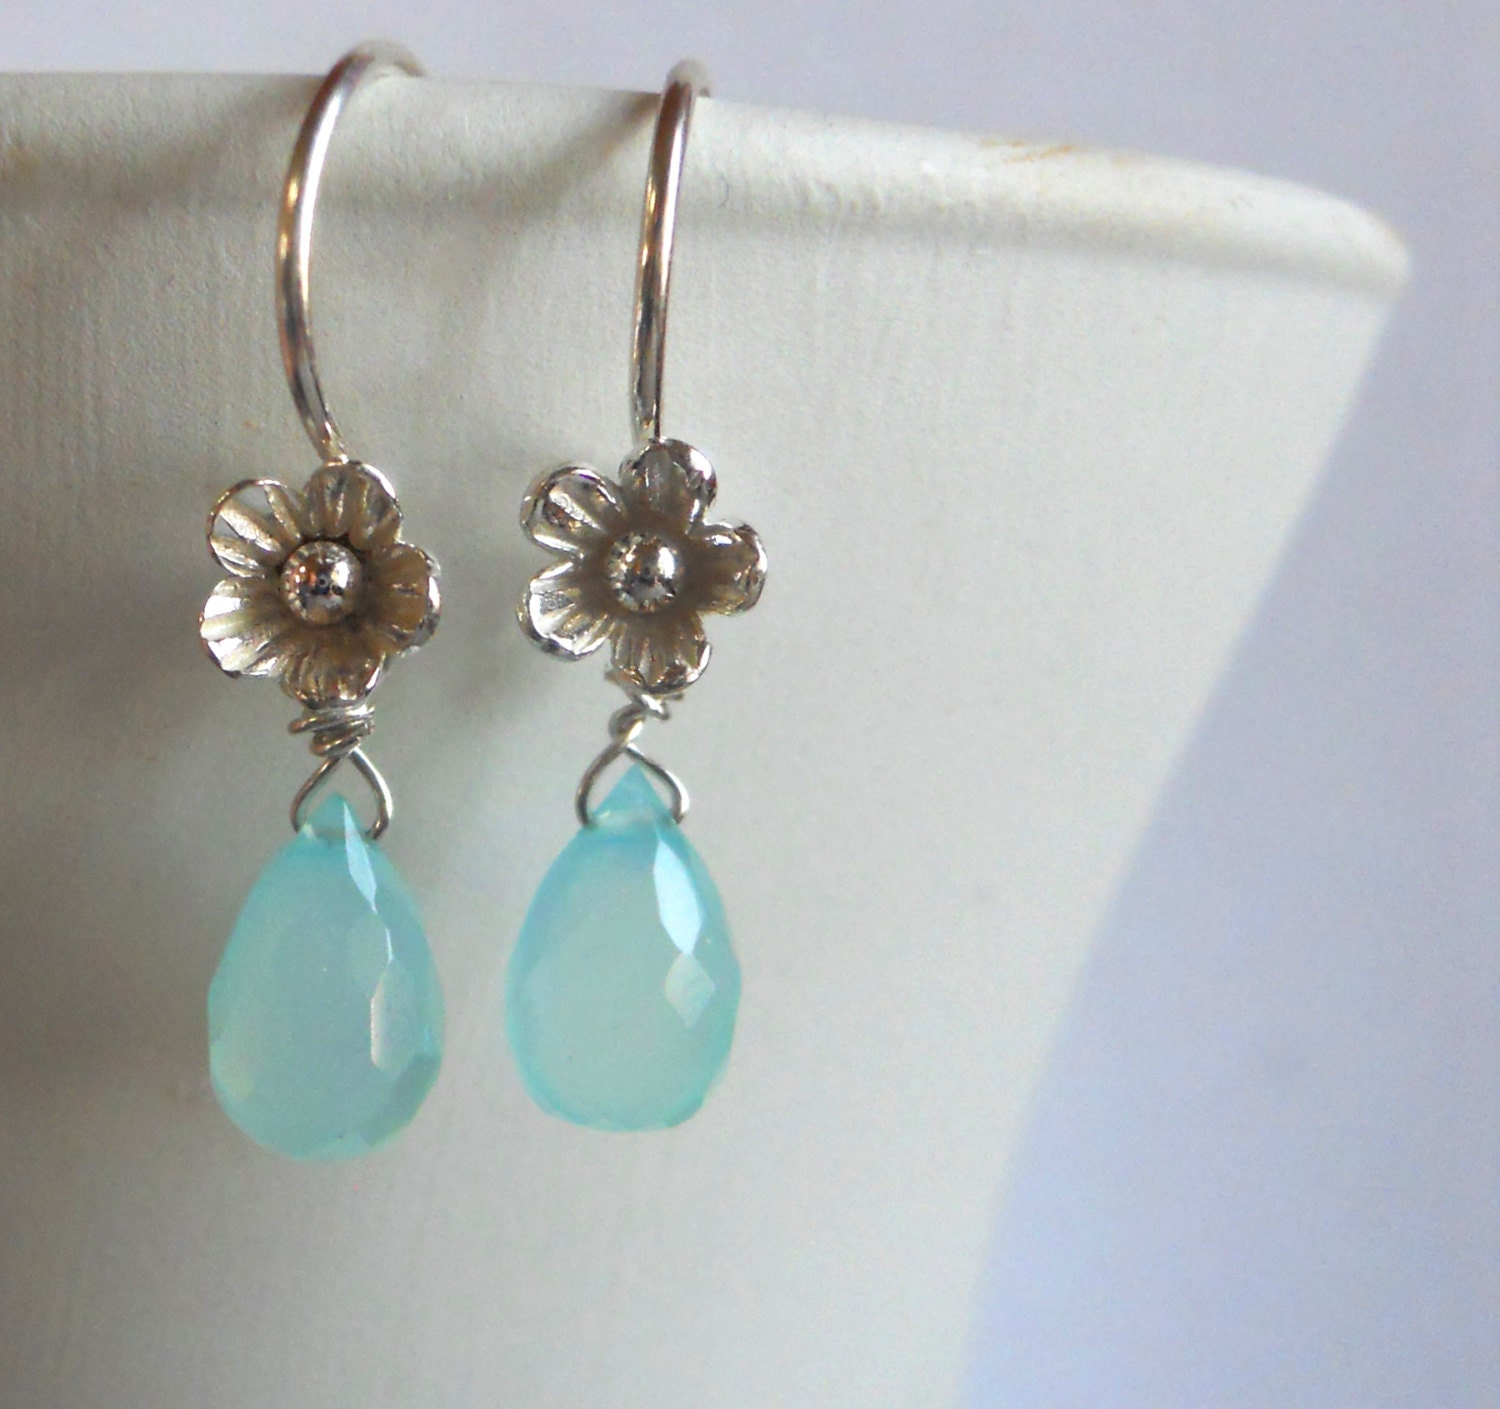 Teeny Aqua Blossom Flower Drops chalcedony earrings - $42.00 USD